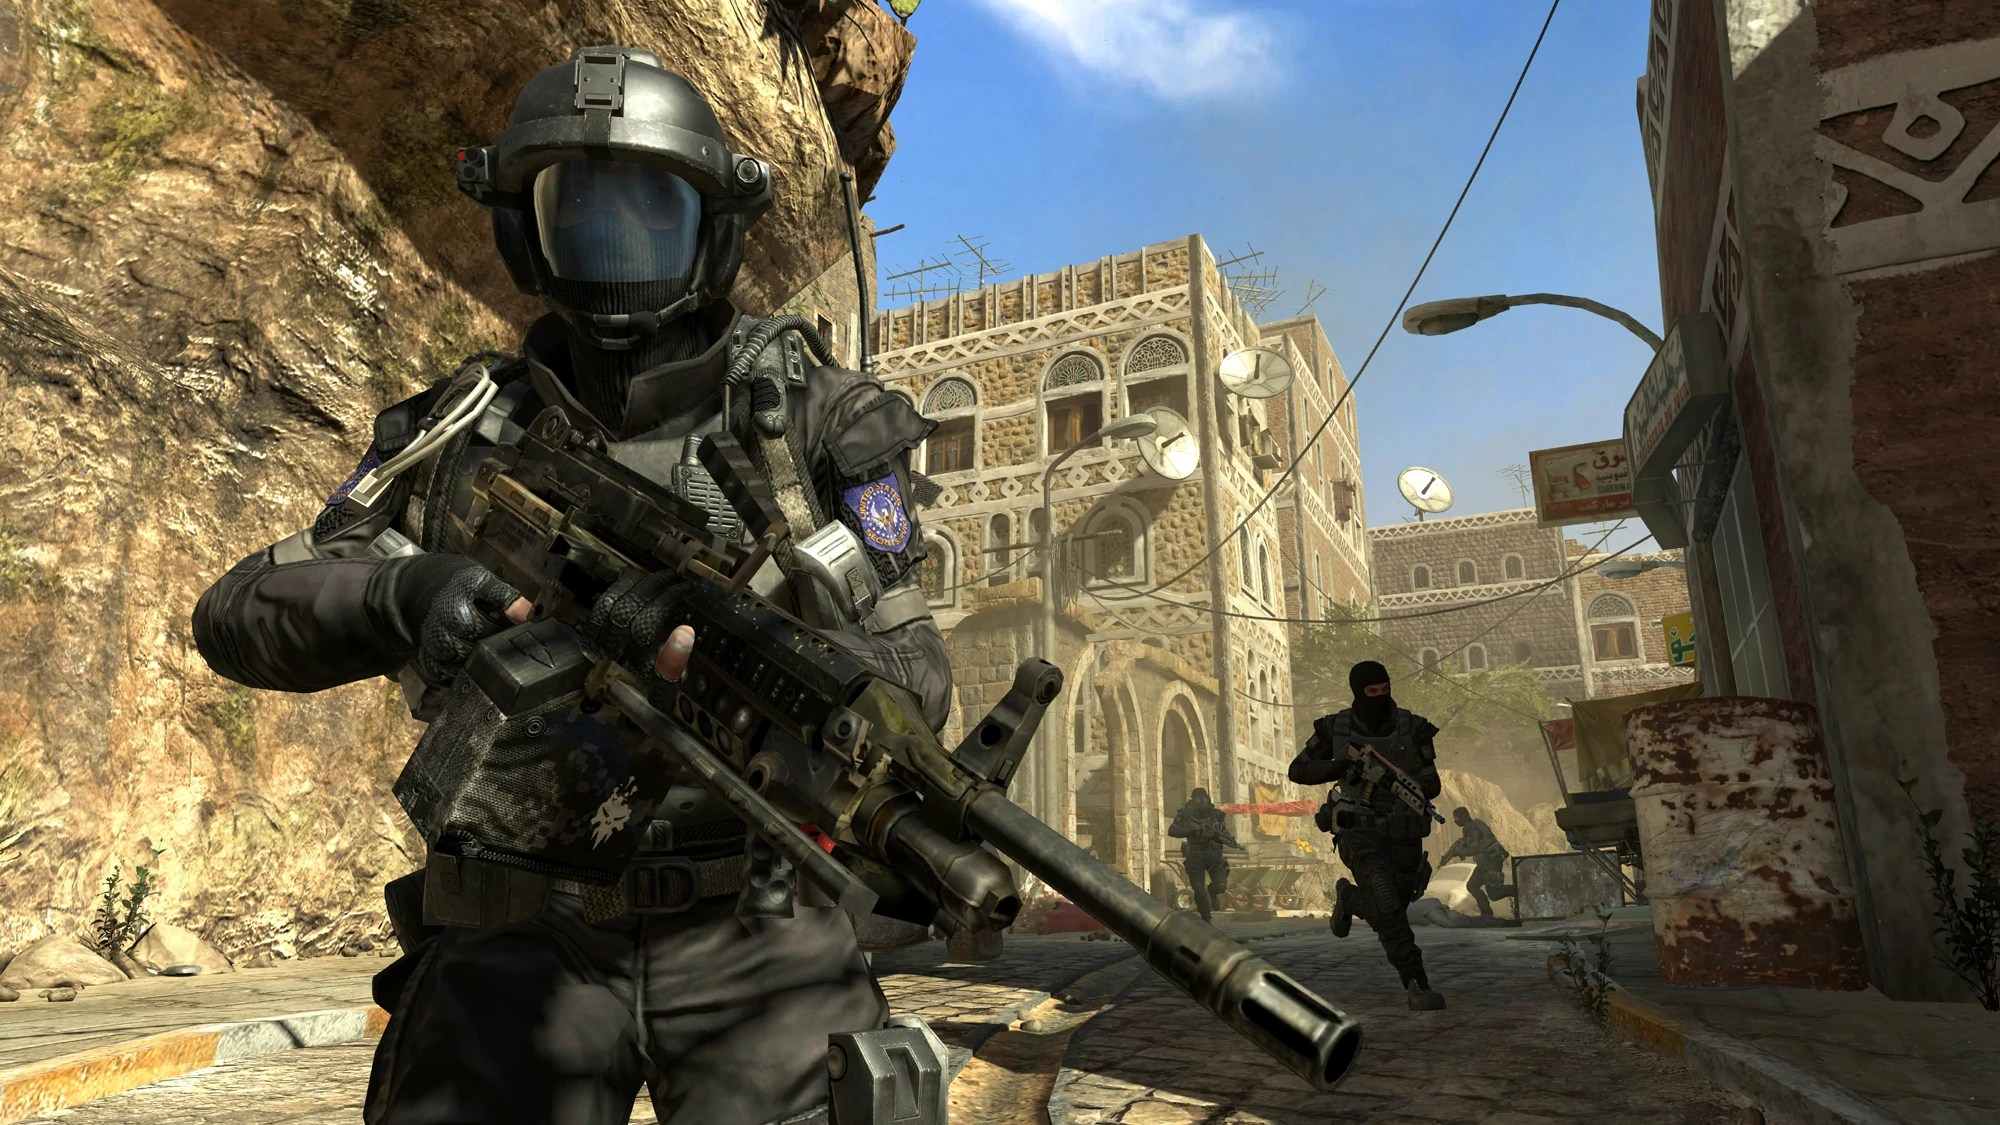 Call of Duty: Black Ops II. Soldier in Yemen. (Photo Credit: Call of Duty: Black Ops II Wikia)